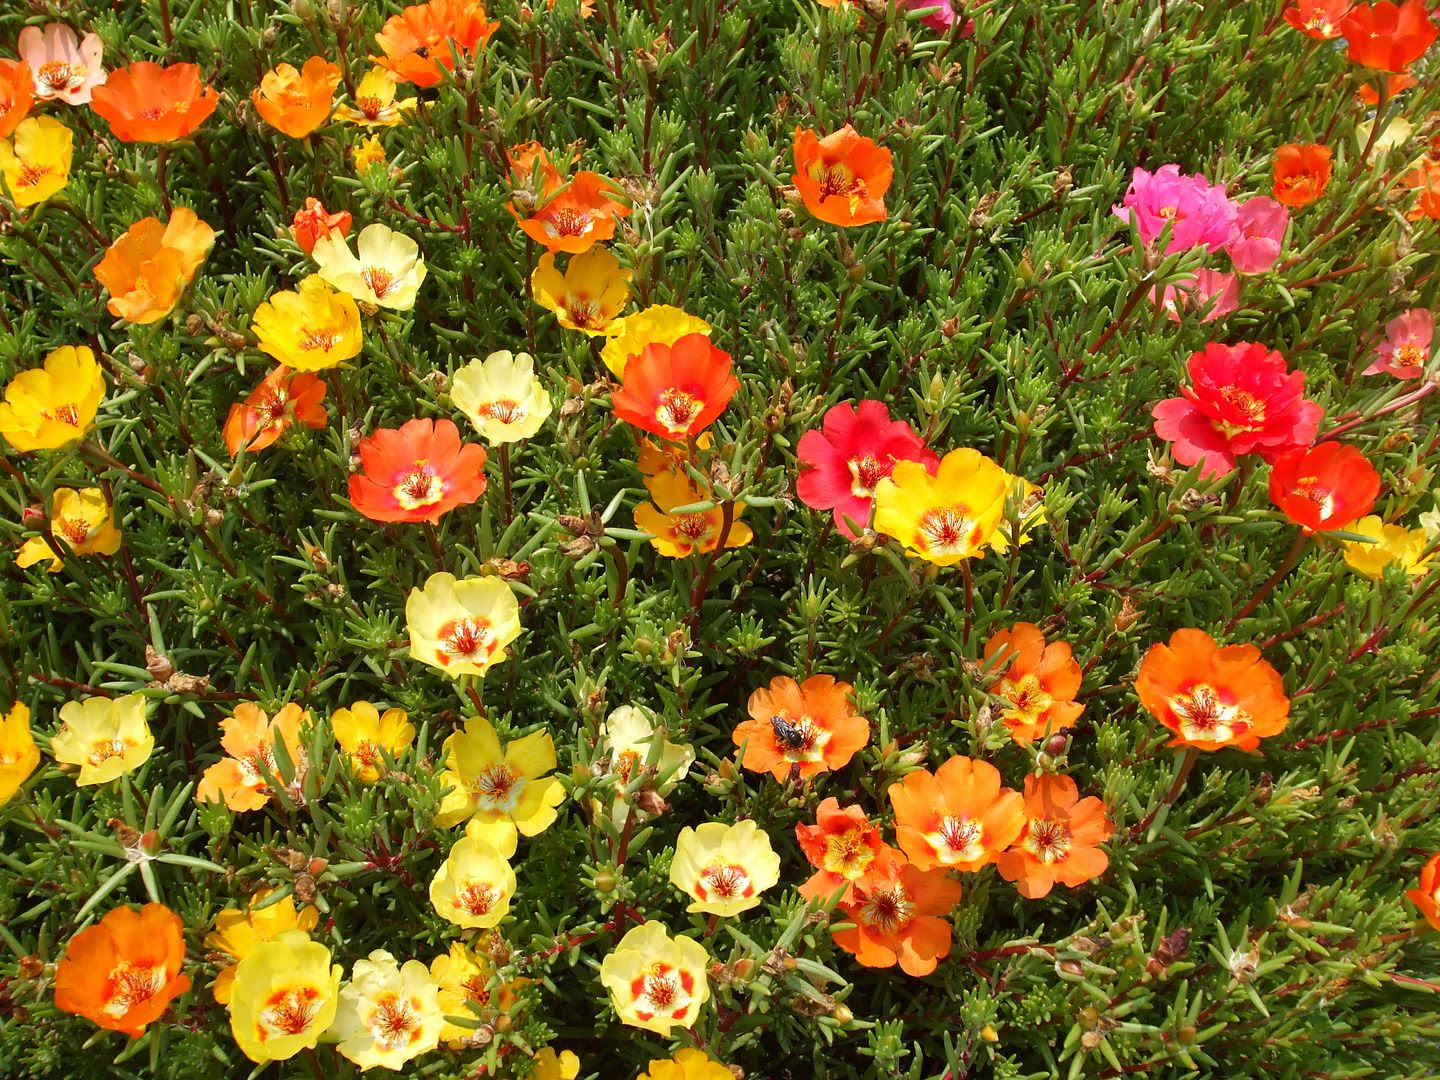 Portulaca by Angie Ouellette-Tower photo DSCF0911_zpsc50685fe.jpg